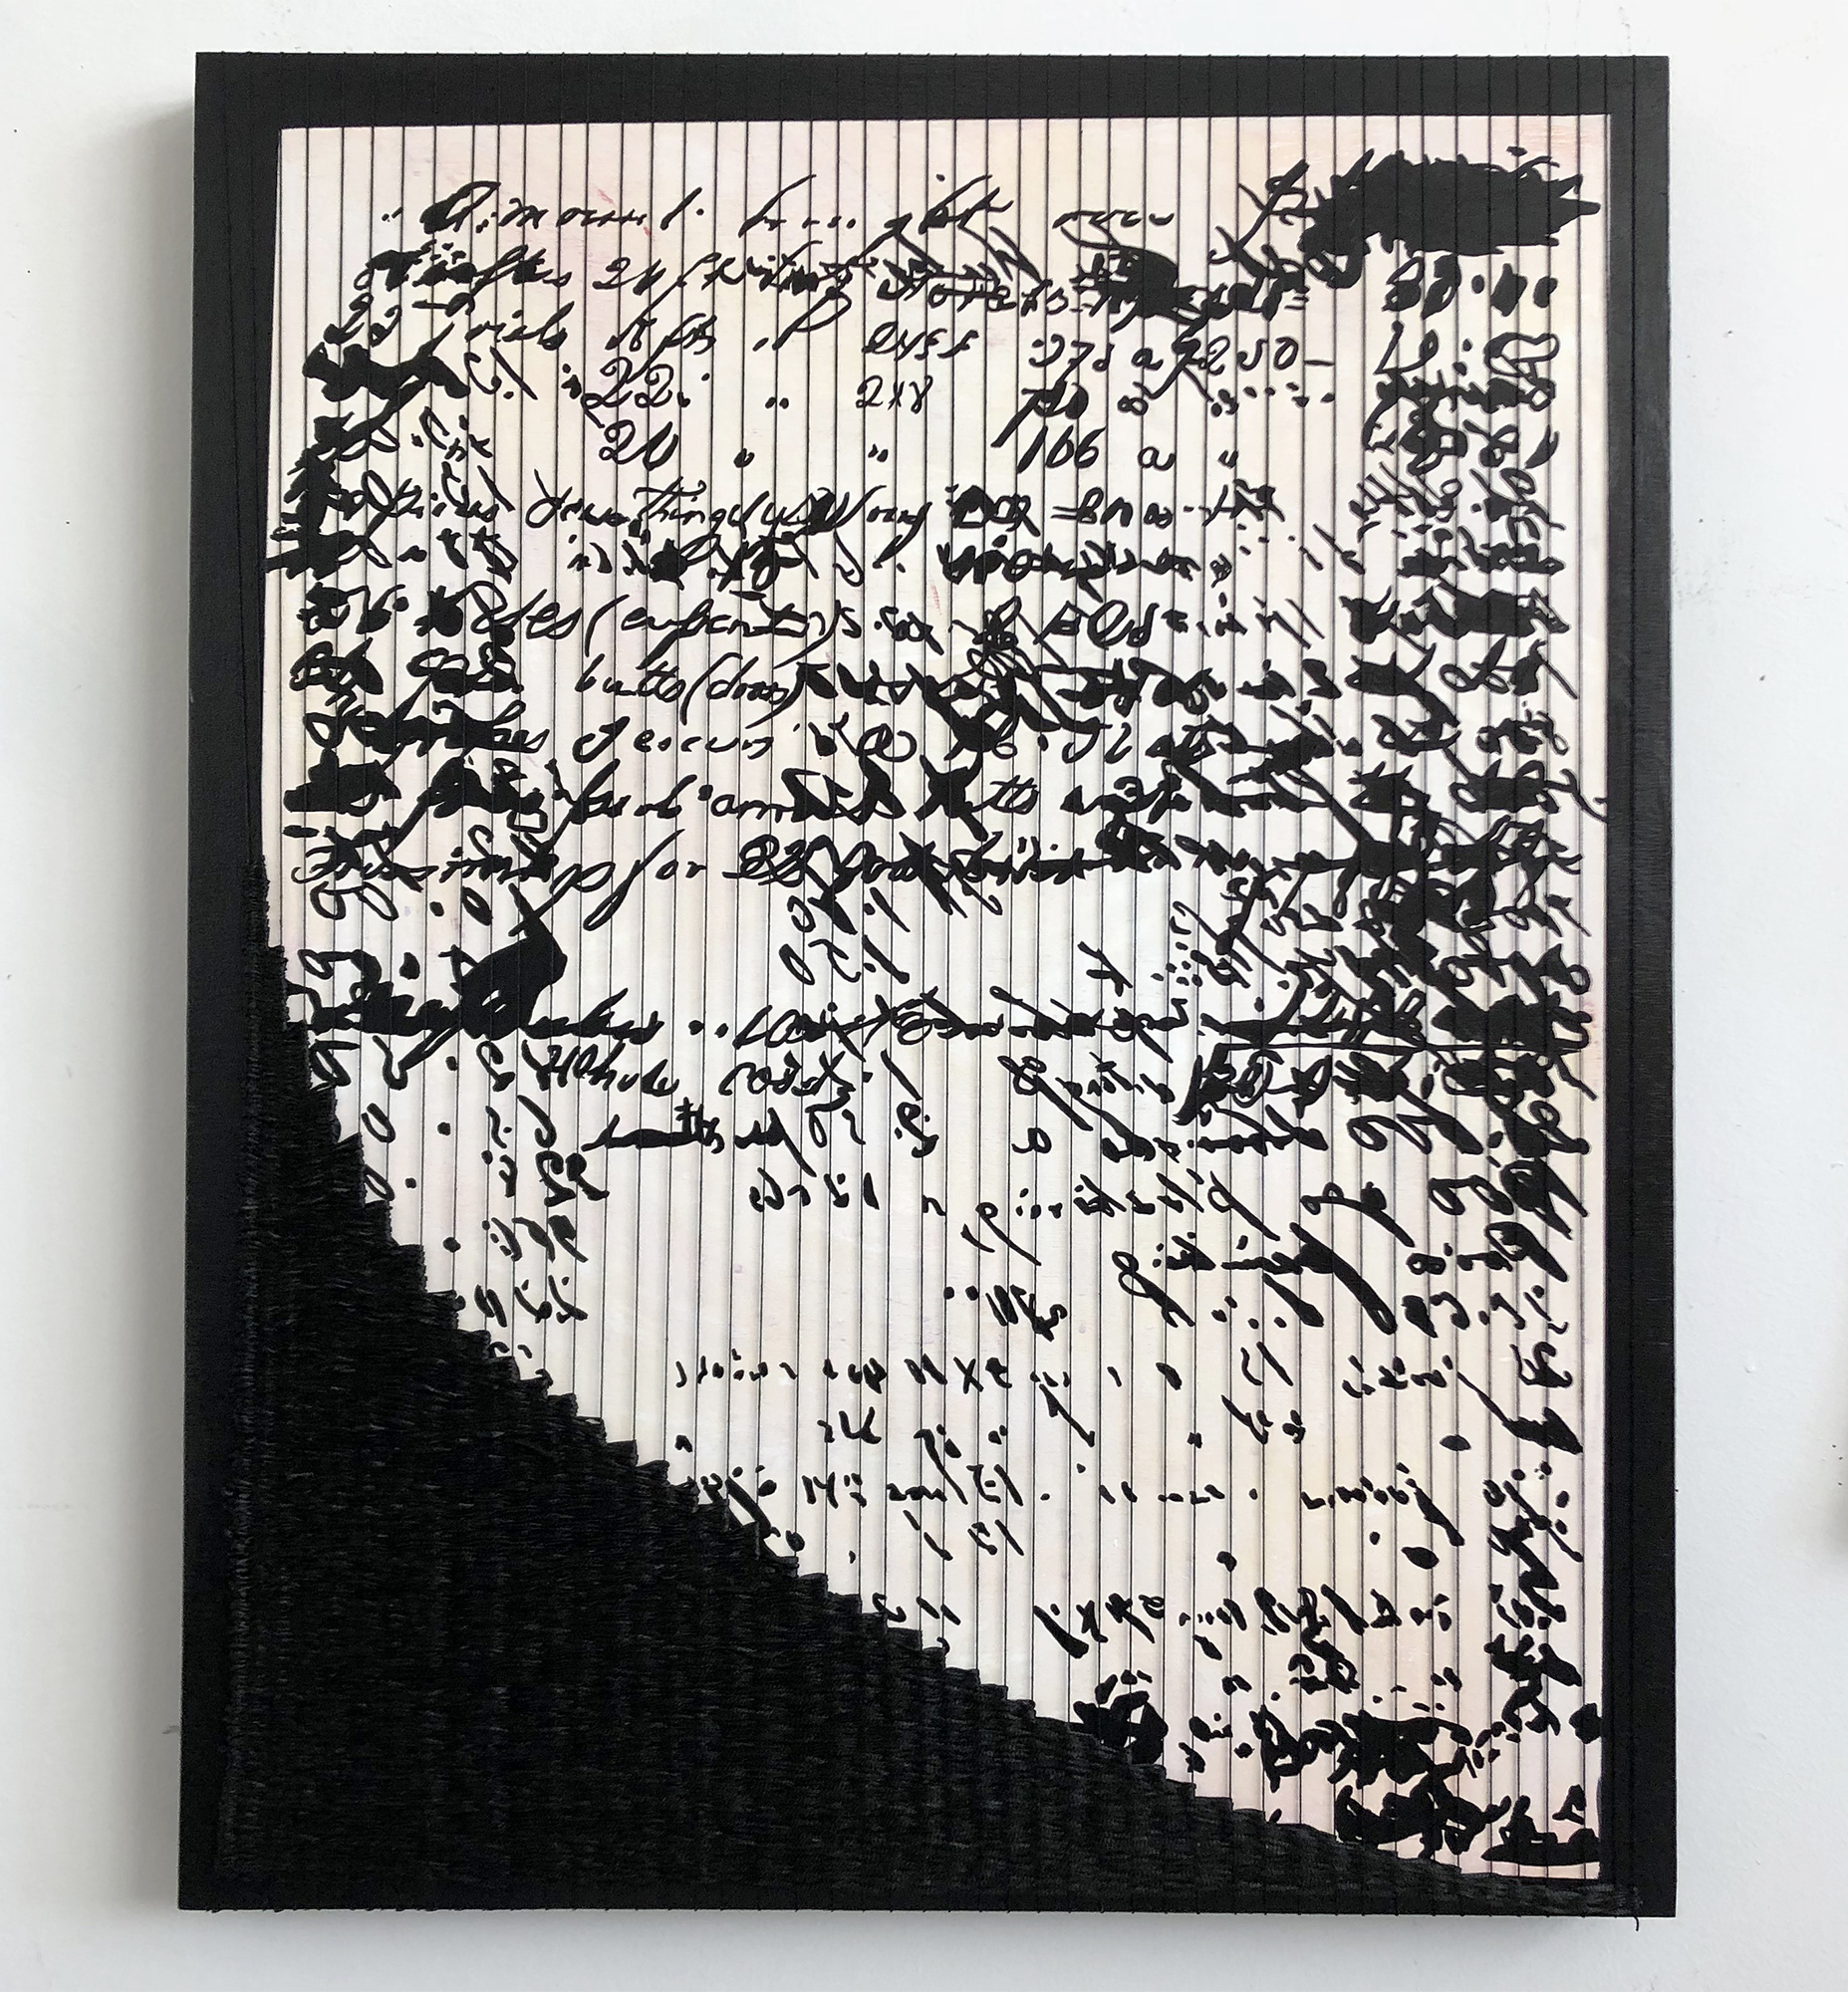 Sara Jones, Difficult to Read Because of Bleed-through, 2018